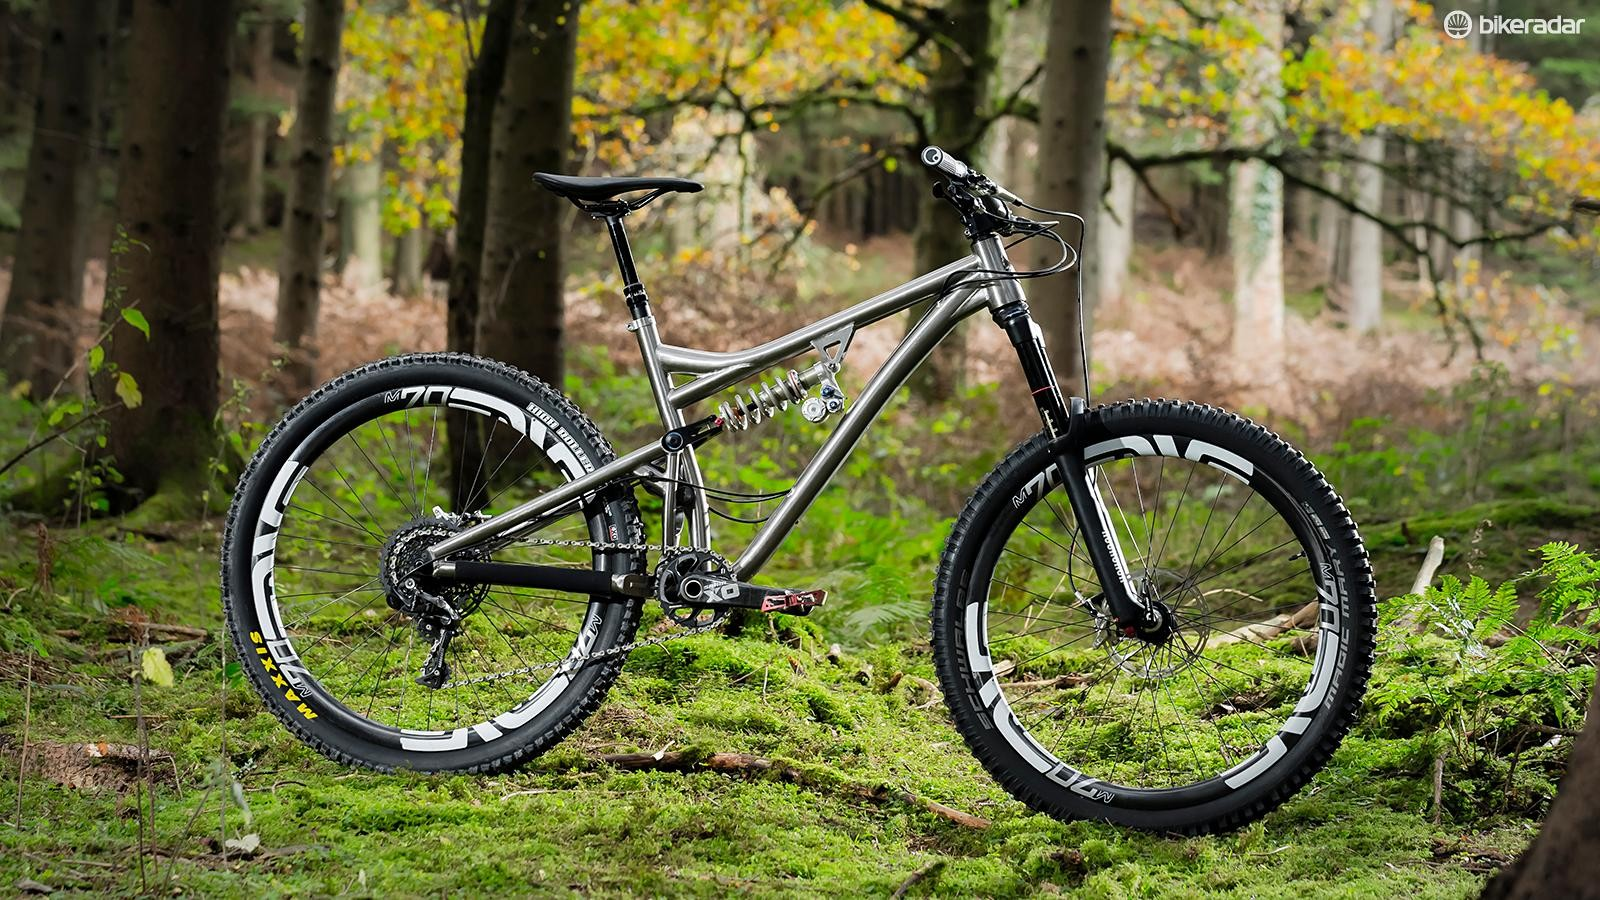 Titanium full-sussers like the Kingdom Switch are an expensive rarity, and our test bike had a build to match